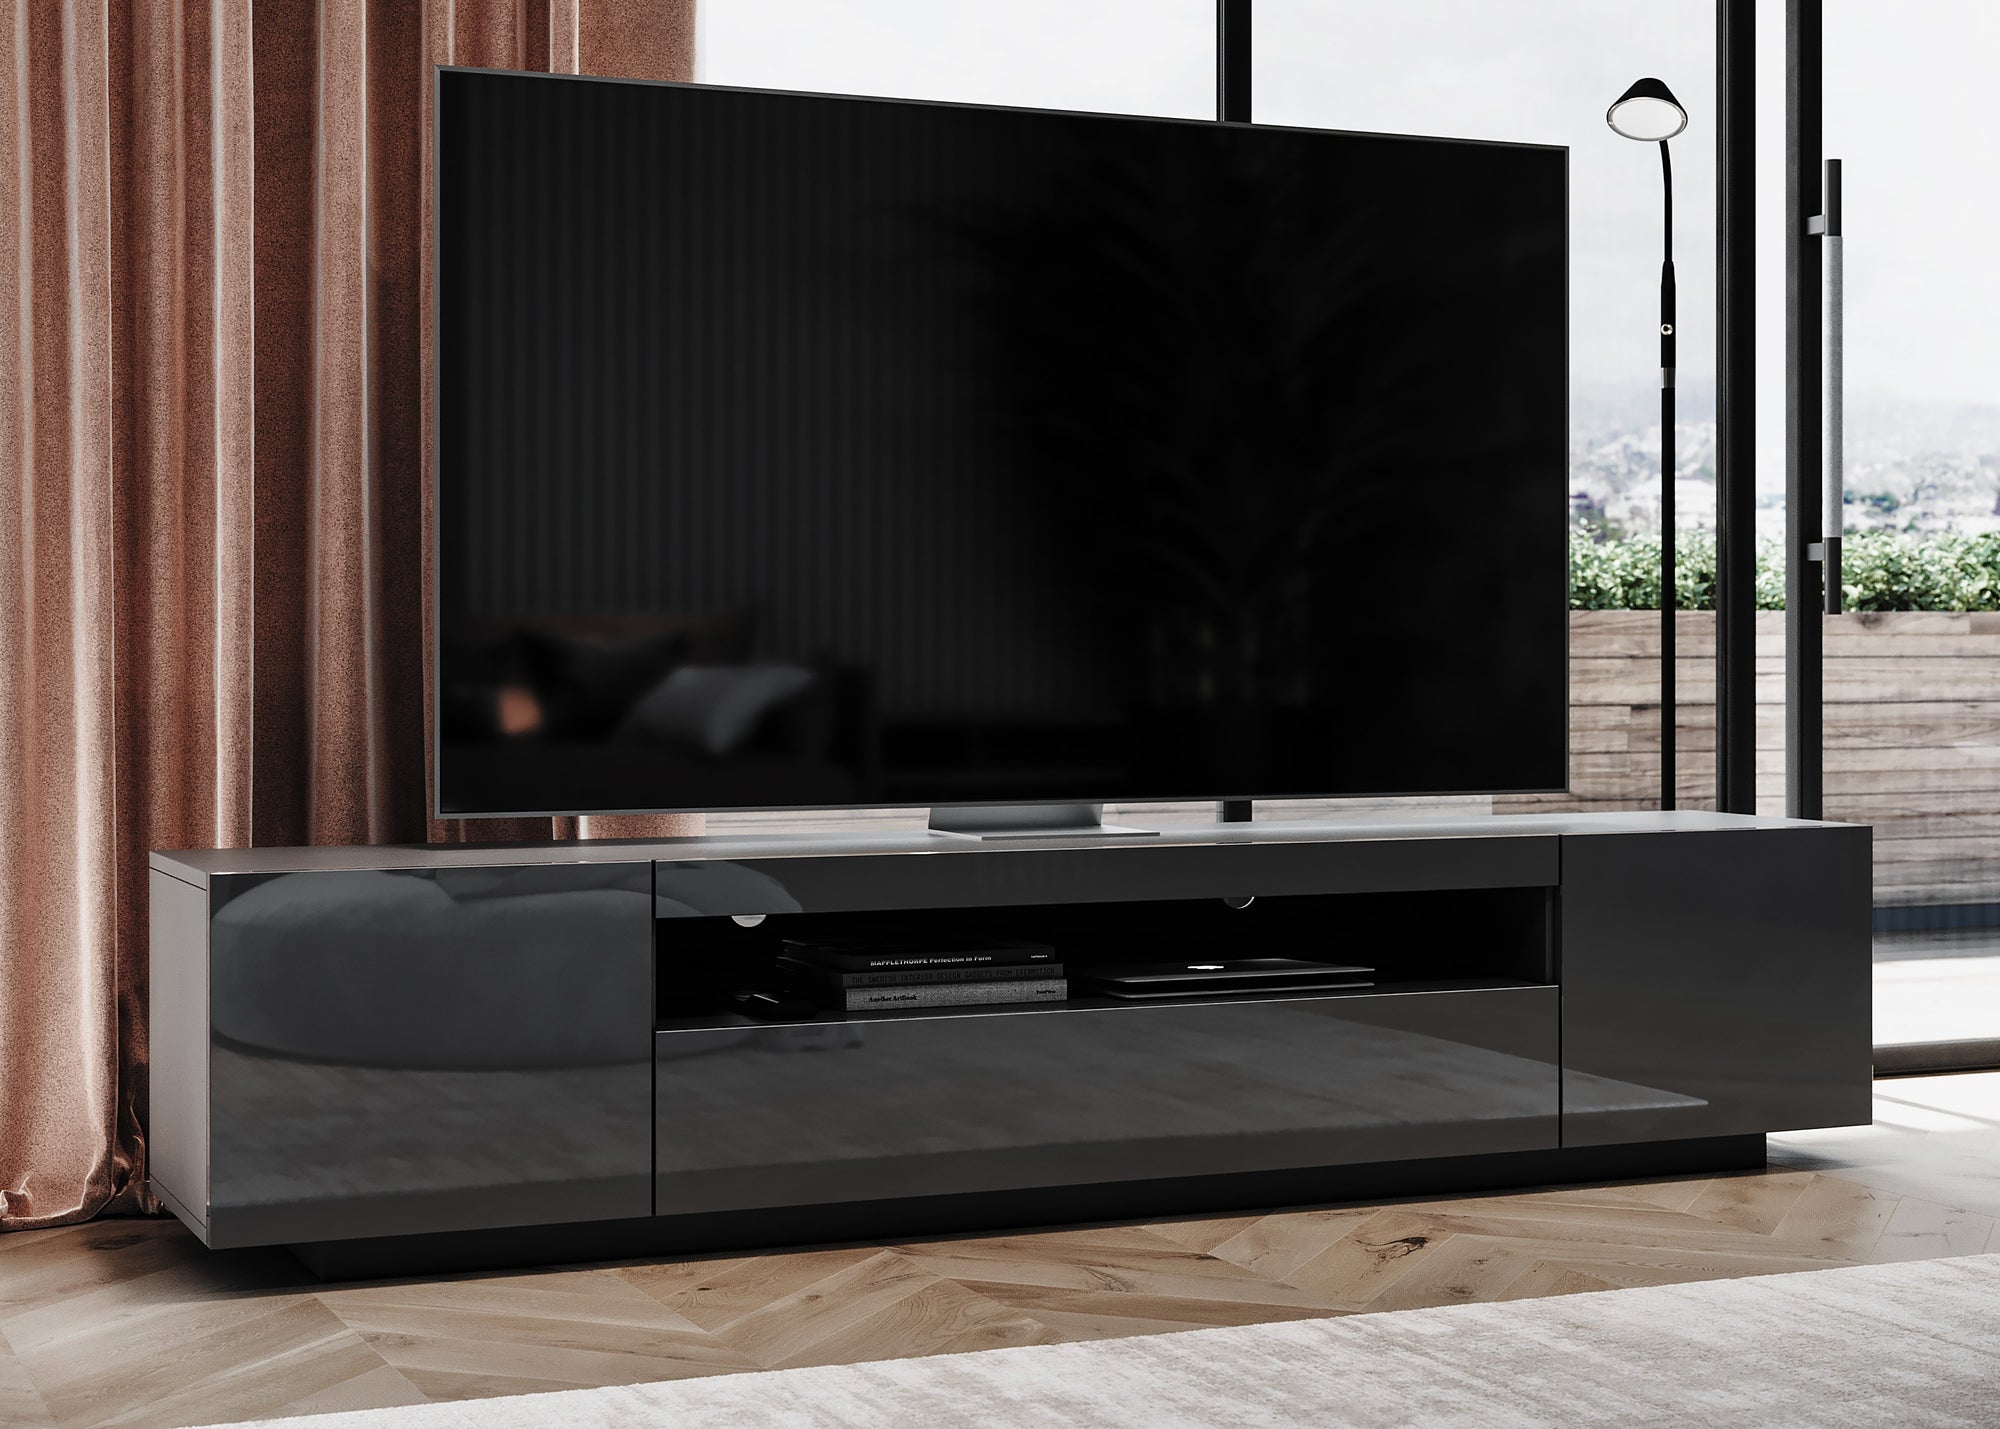 TV Stand SAMSO in Dark Grey, modern designs, nordic inspired